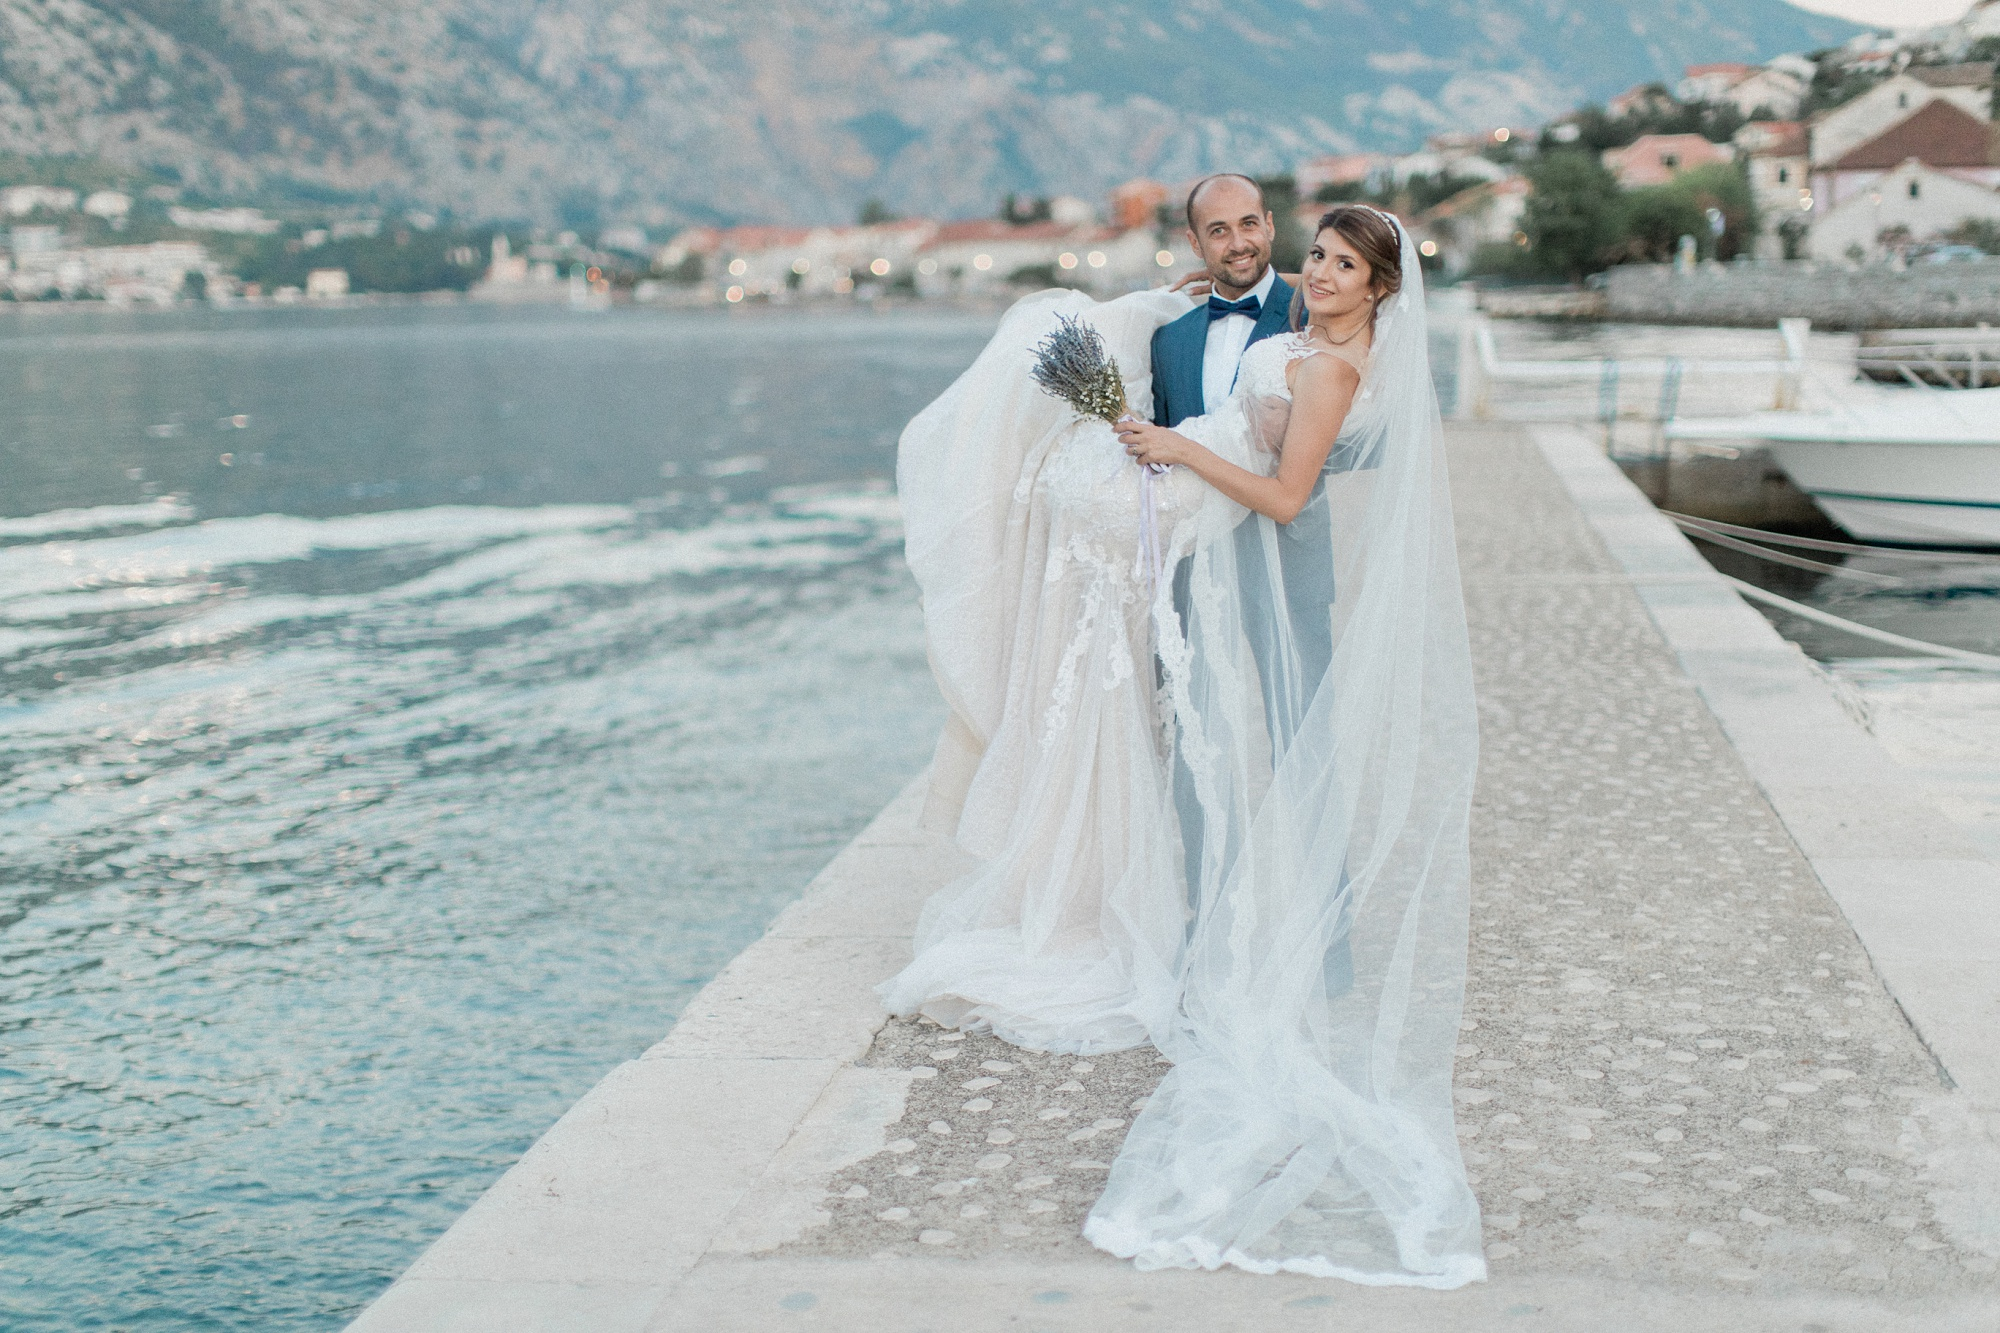 Albania Wedding Photographer - Anjeza Dyrmishi_0453.jpg